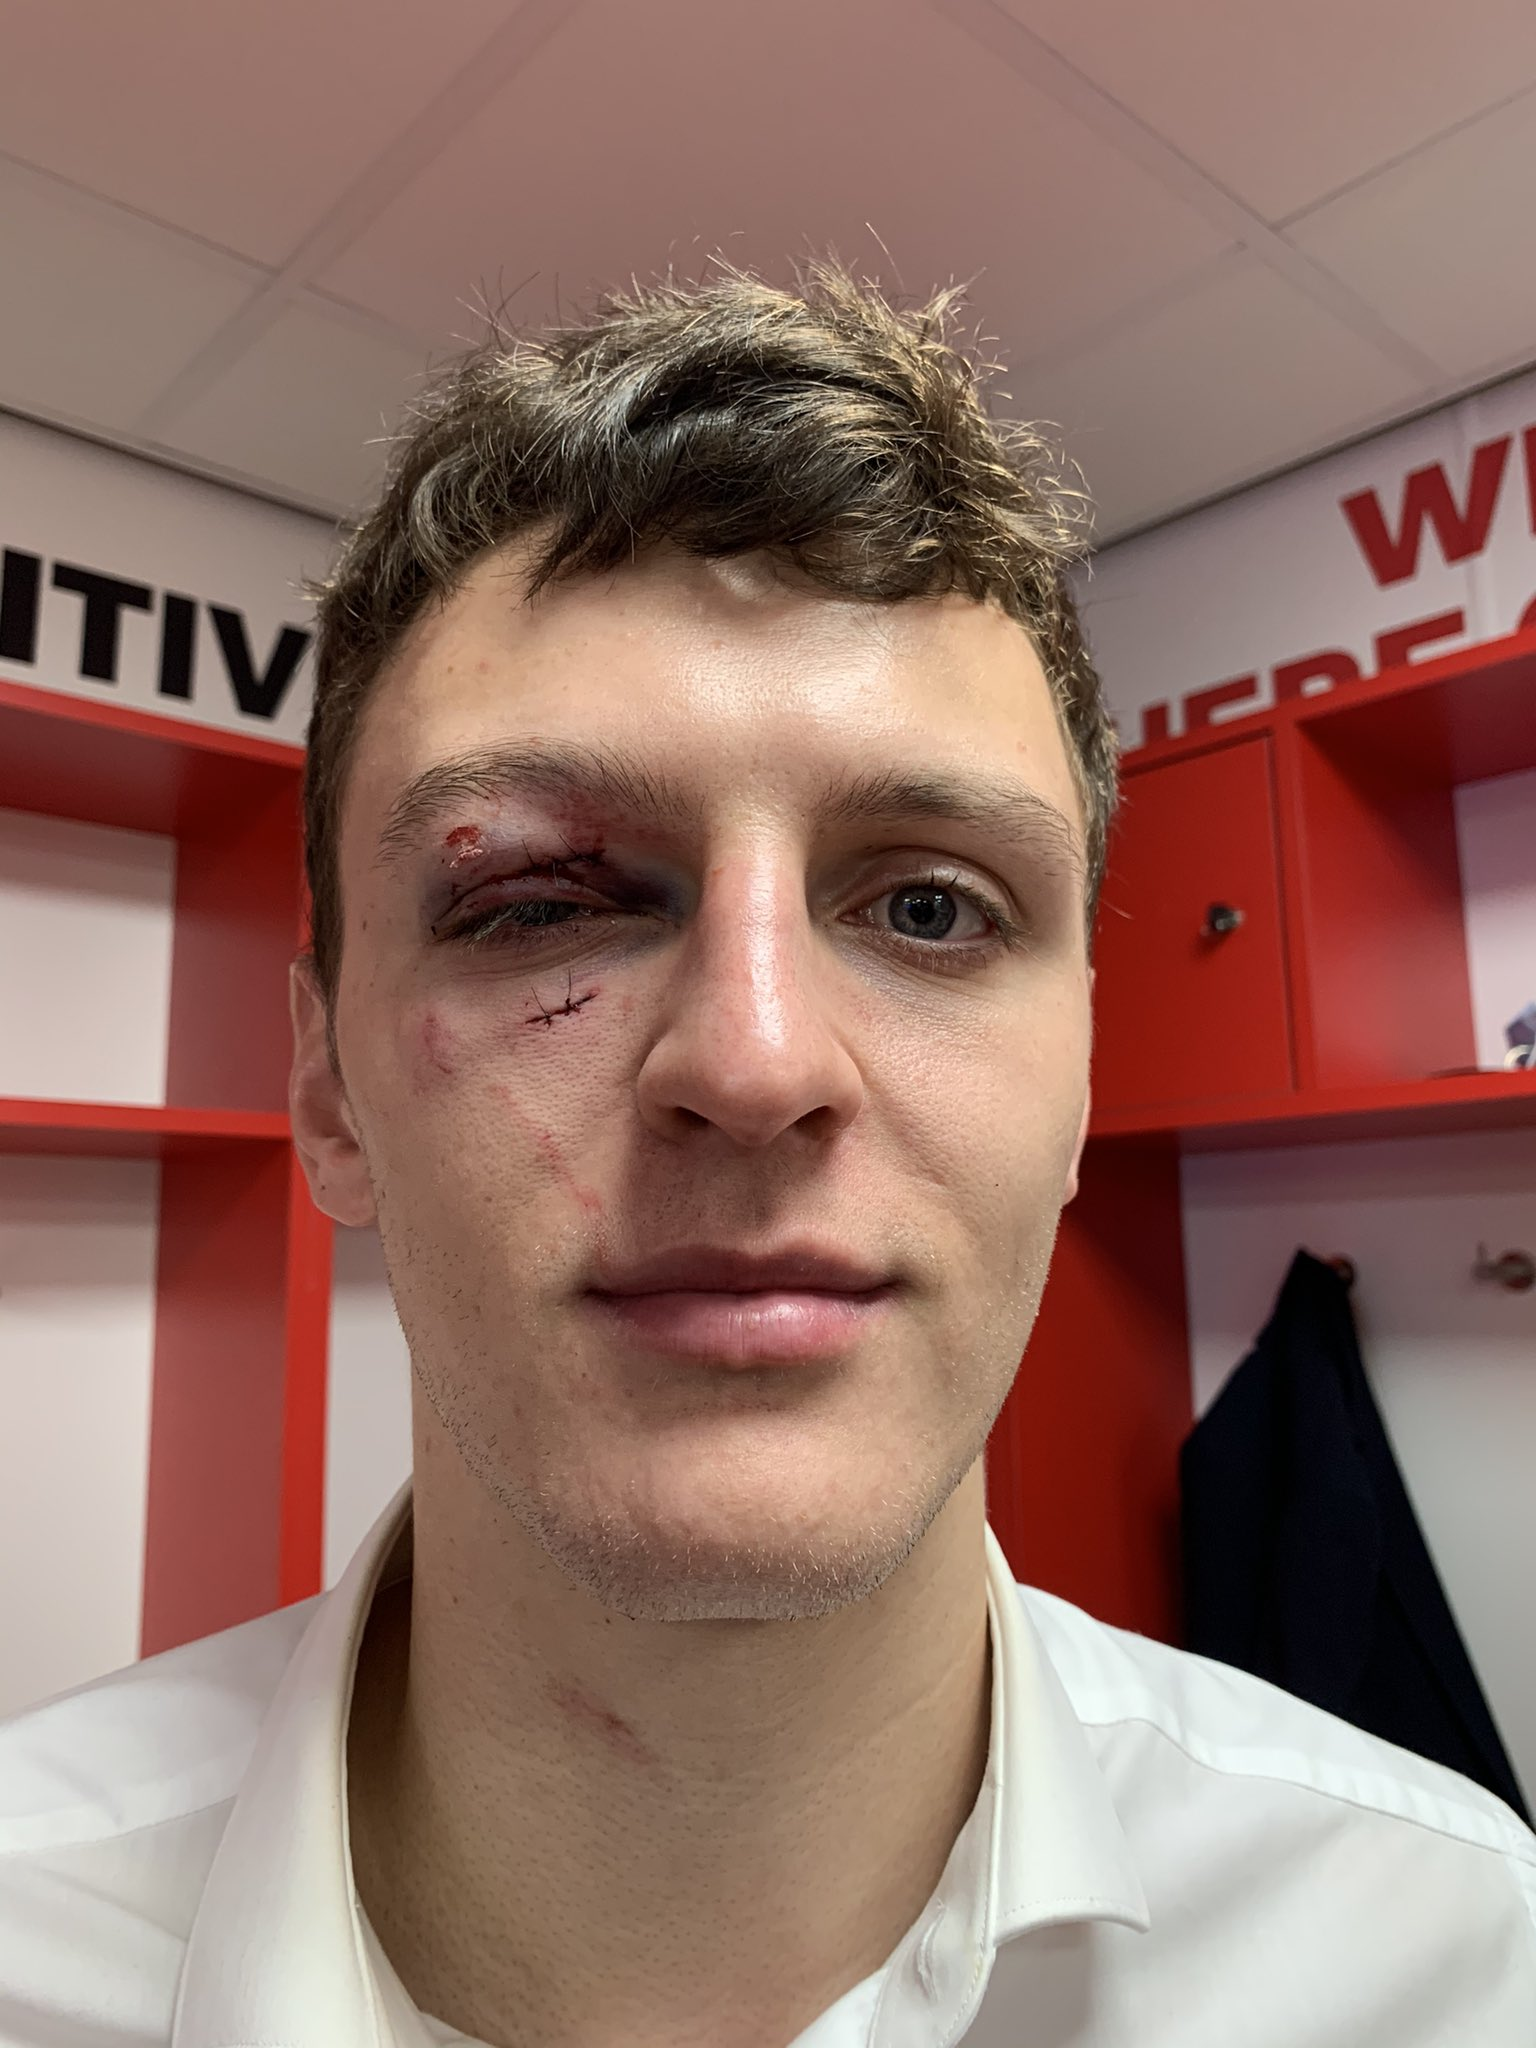 Middlesbrough defender Dael Fry shows a deep gash under his eye